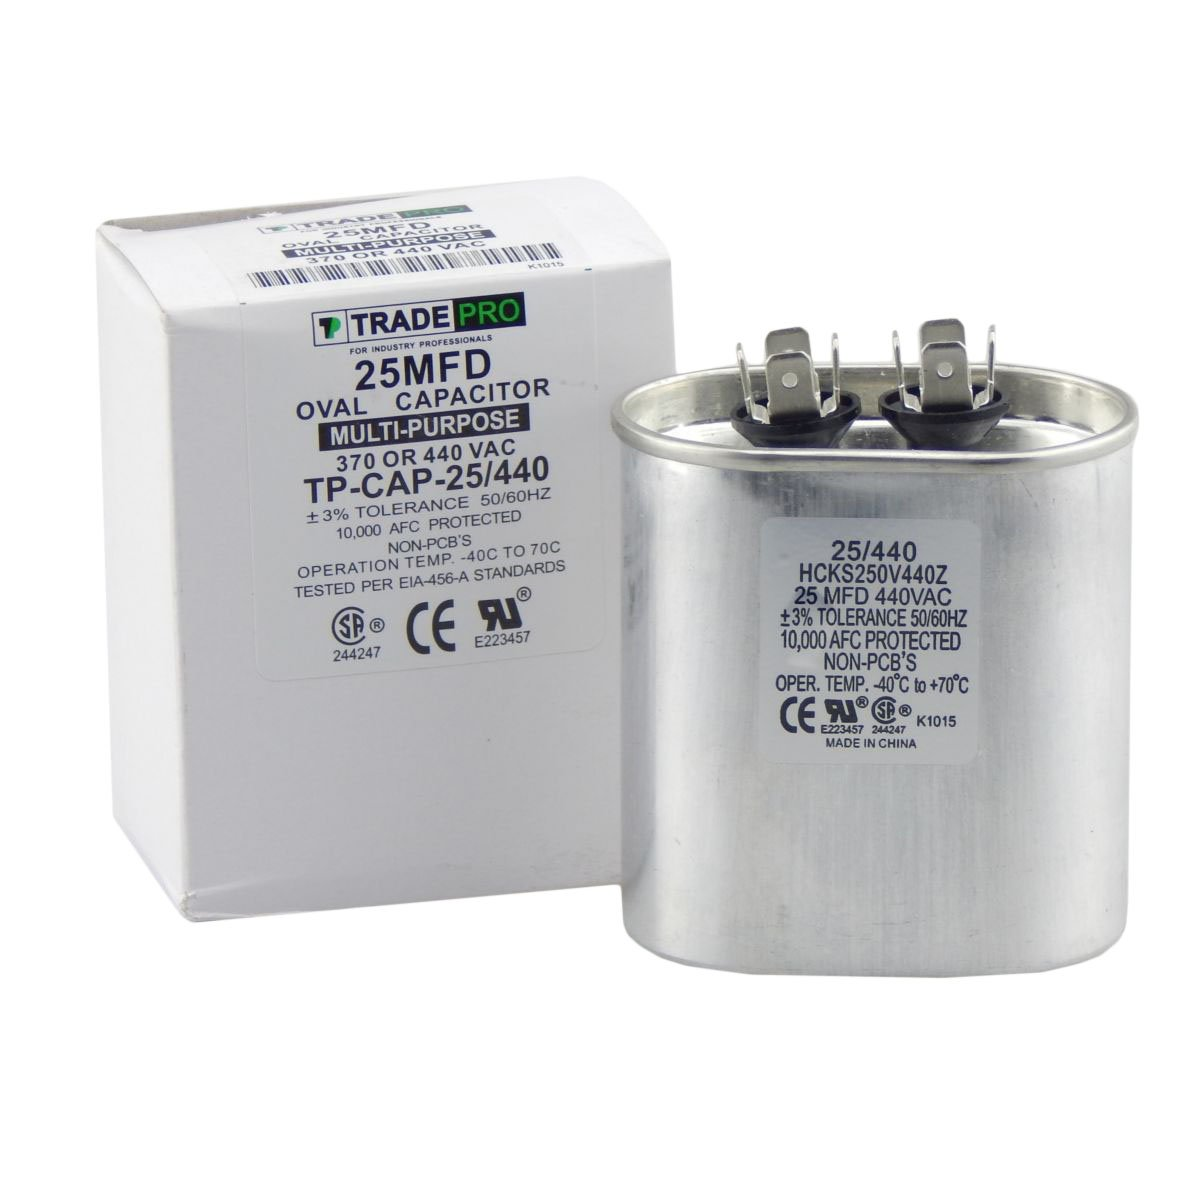 25 mfd Capacitor, Industrial Grade Replacement for Central Air-Conditioners, Heat Pumps, Condenser Fan Motors, and Compressors. Oval Multi-Purpose 370/440 Volt - by Trade Pro